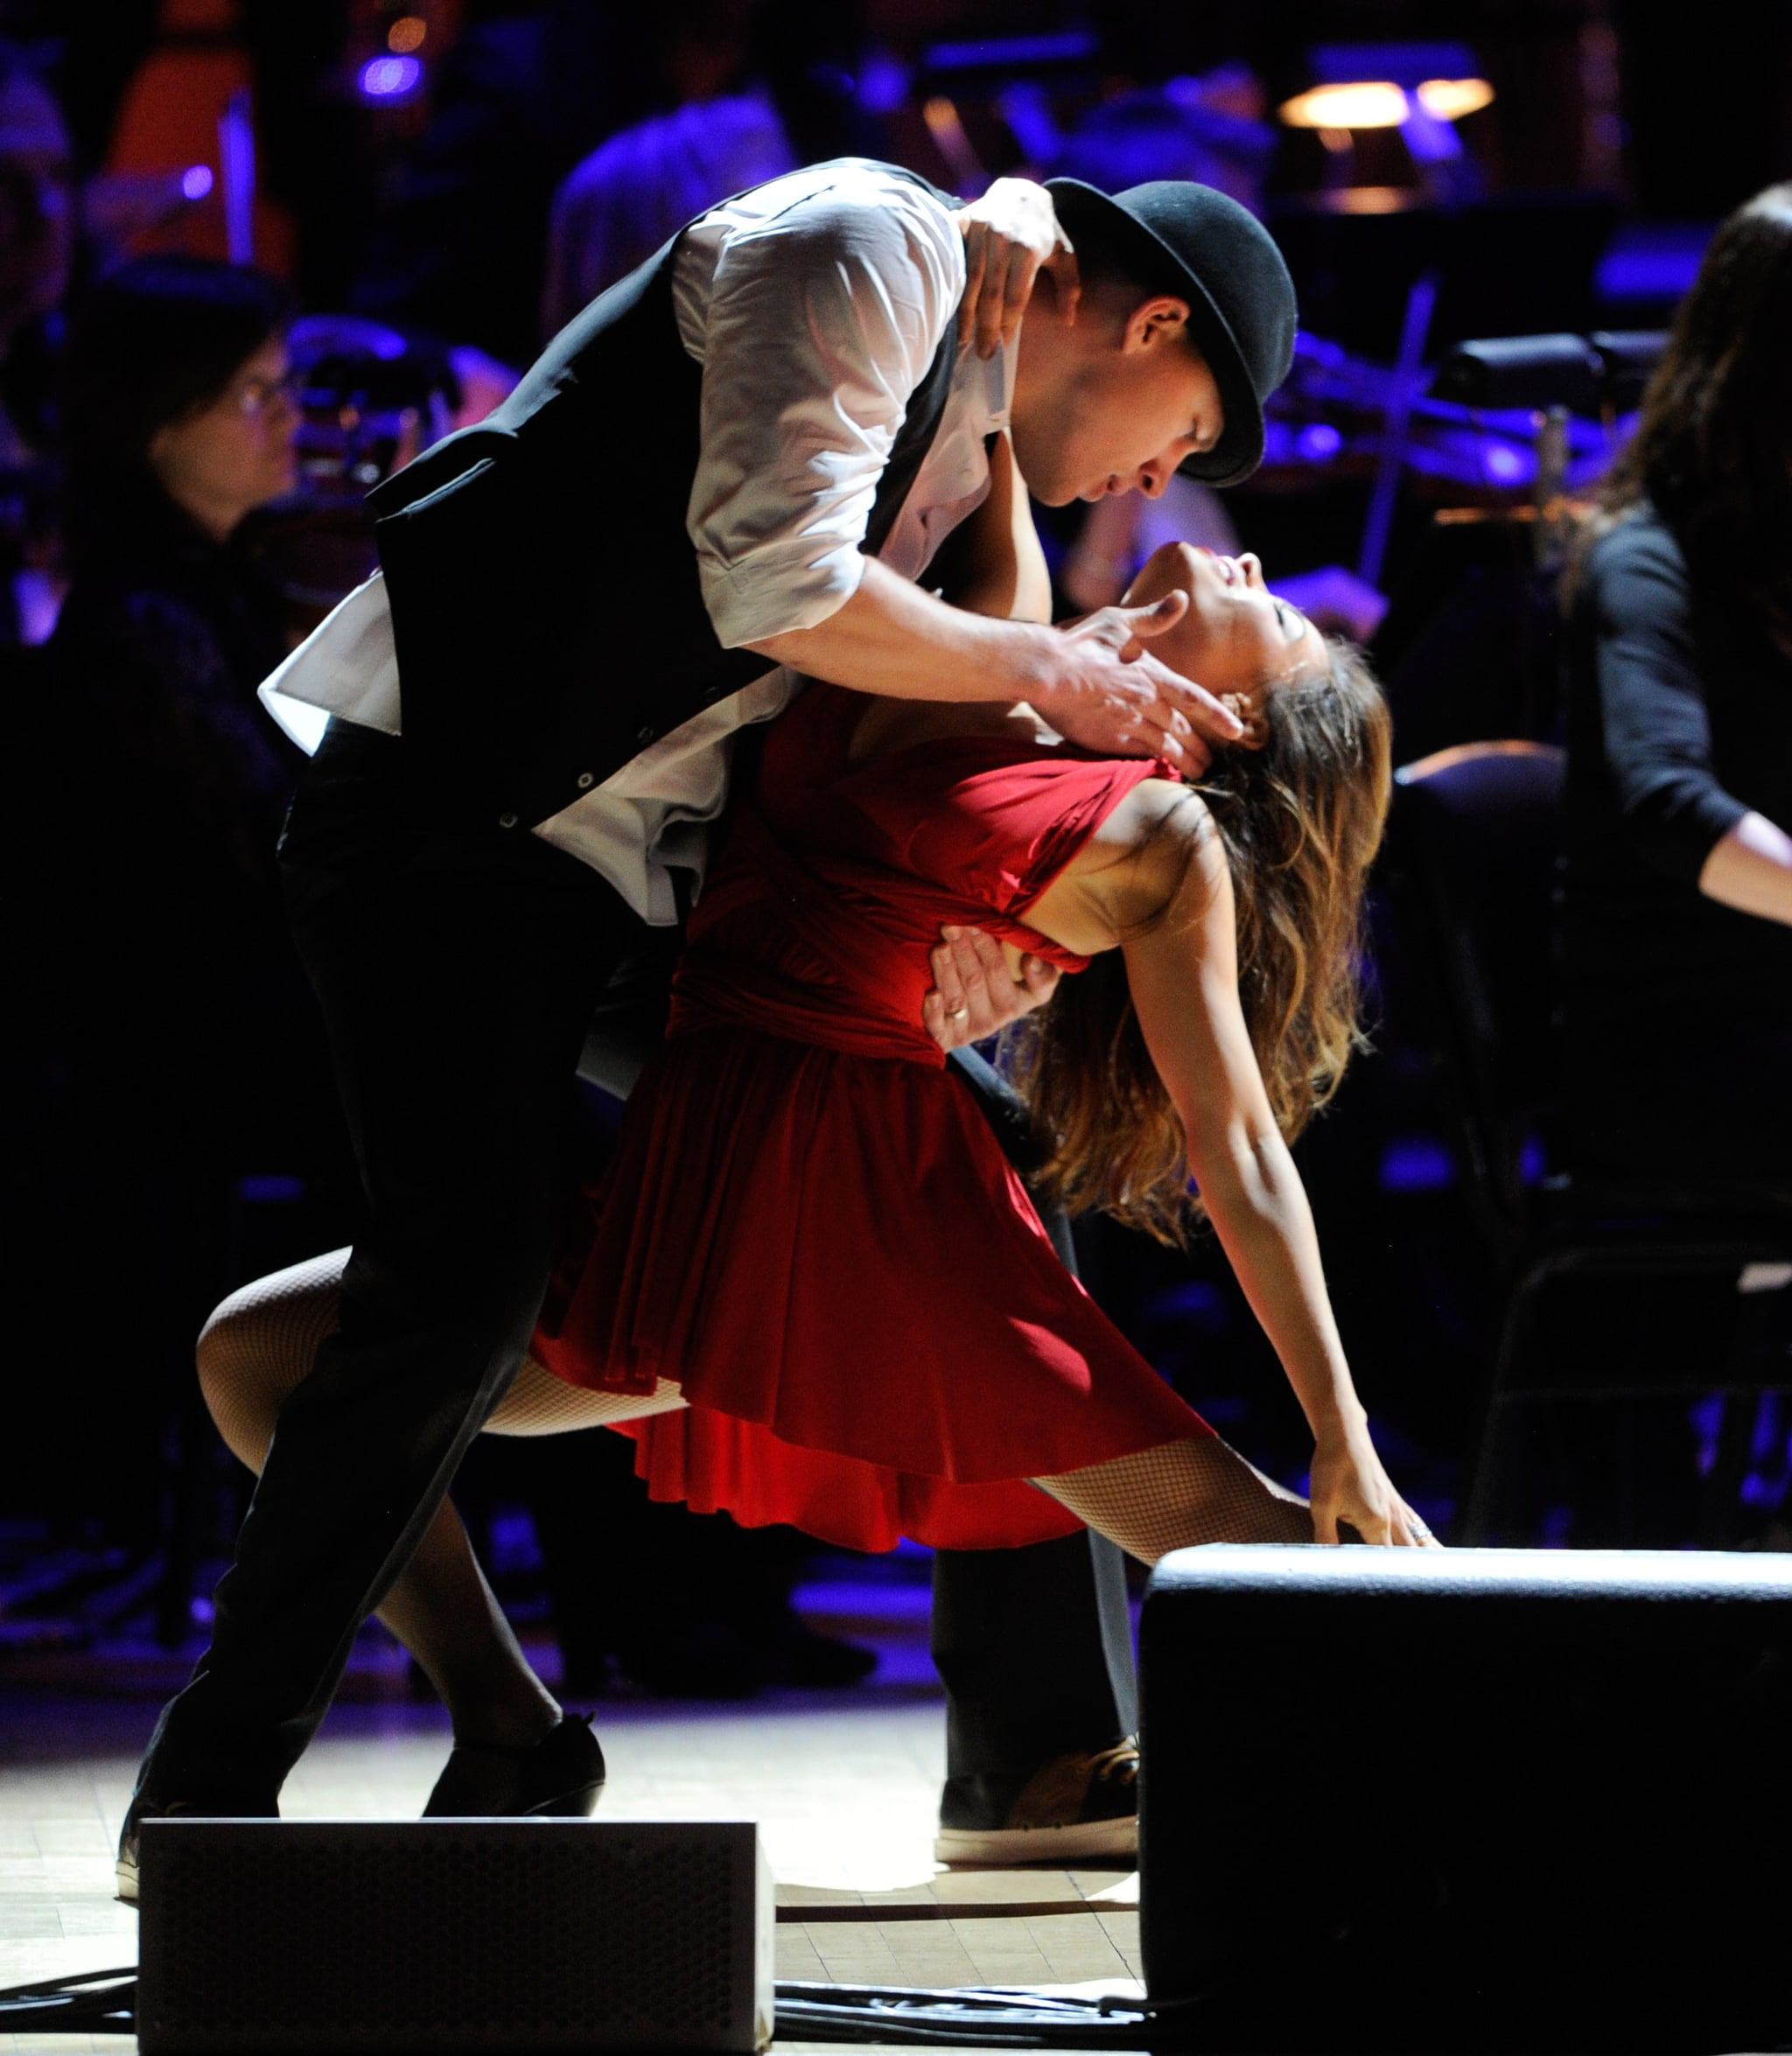 Channing and Jenna showed off their dance skills at a Rainforest Fund concert in April 2012 in NYC.